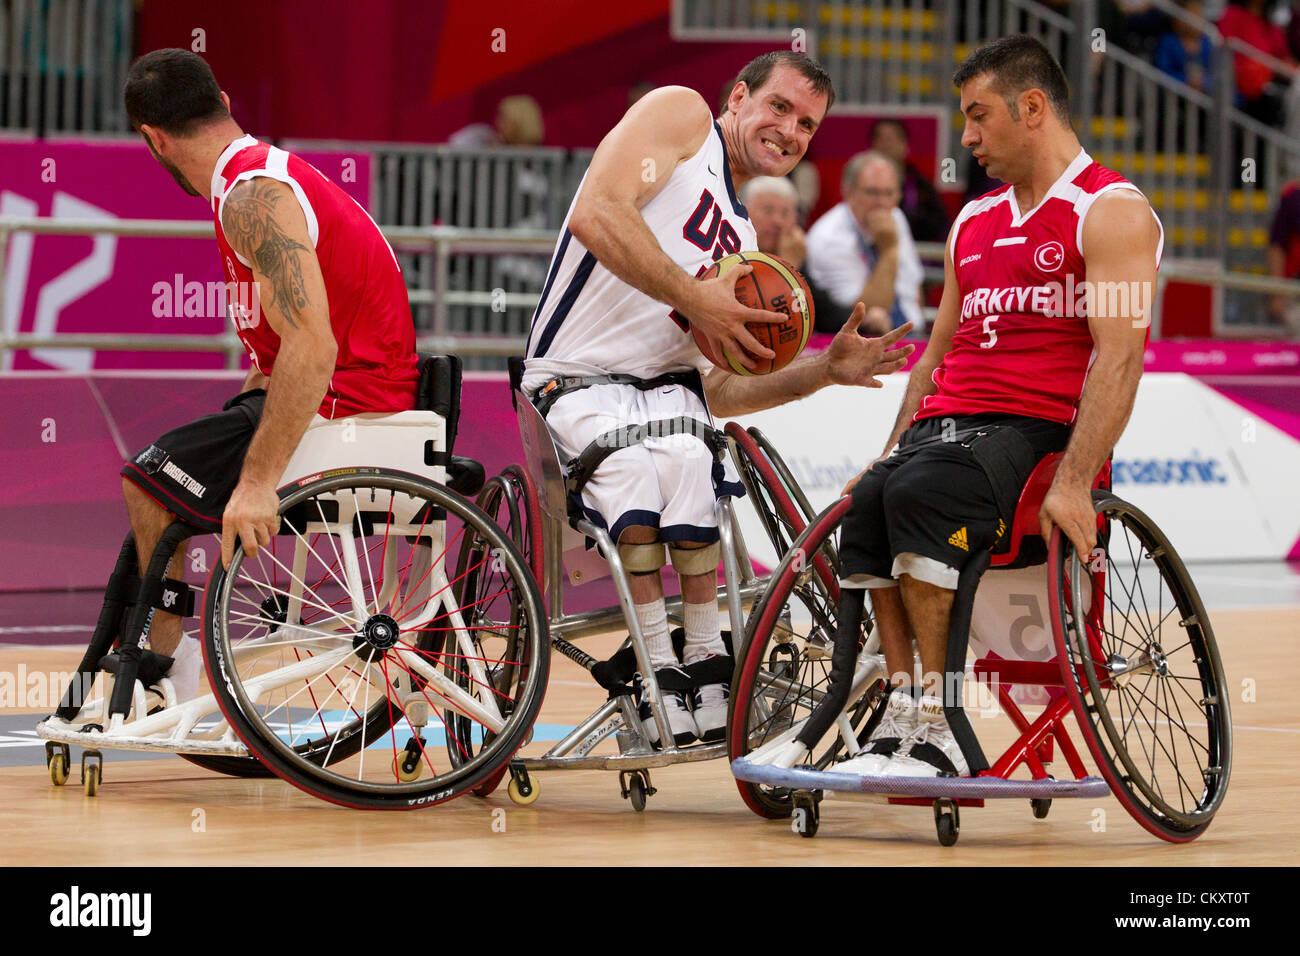 USA's Joshua Turek squeezes between two Turkish during wheelchair basketball game at the 2012 London Paralympics. - Stock Image